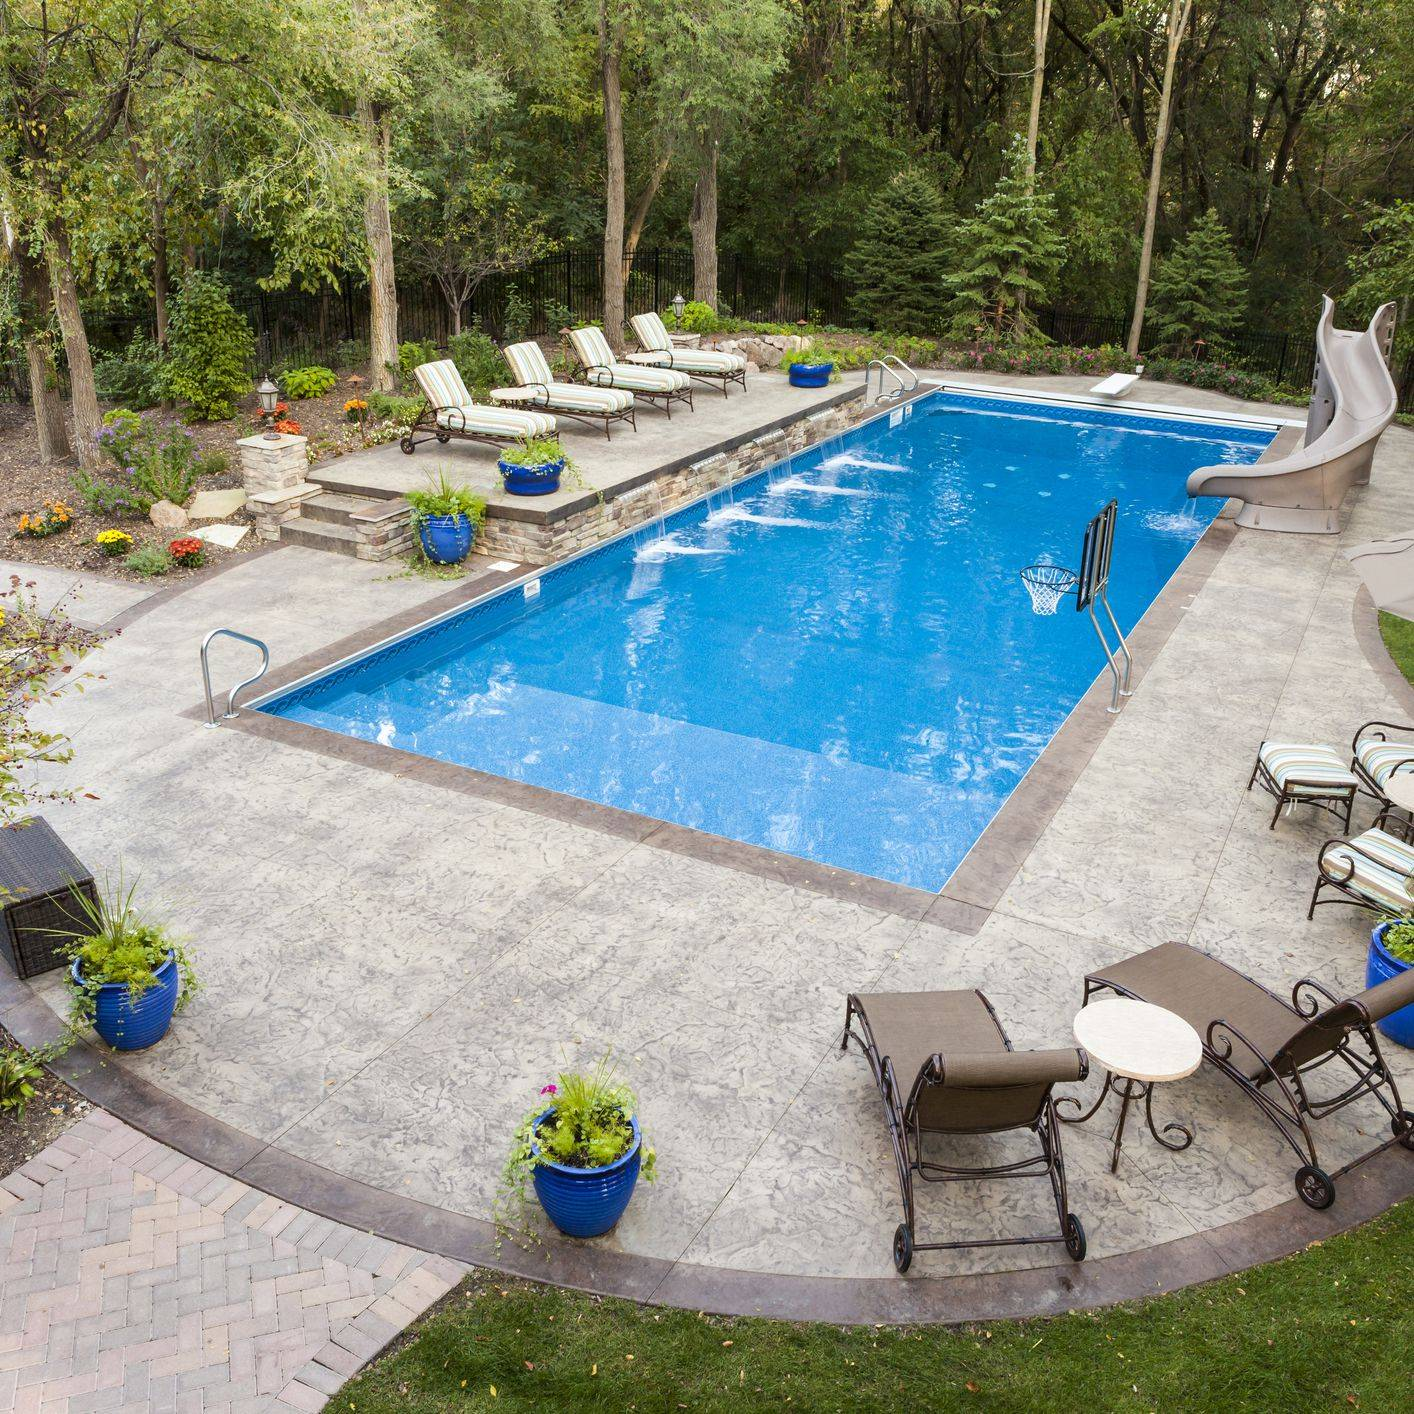 Backyardswimmingpool Getty e25f9b58d58ada4bcd